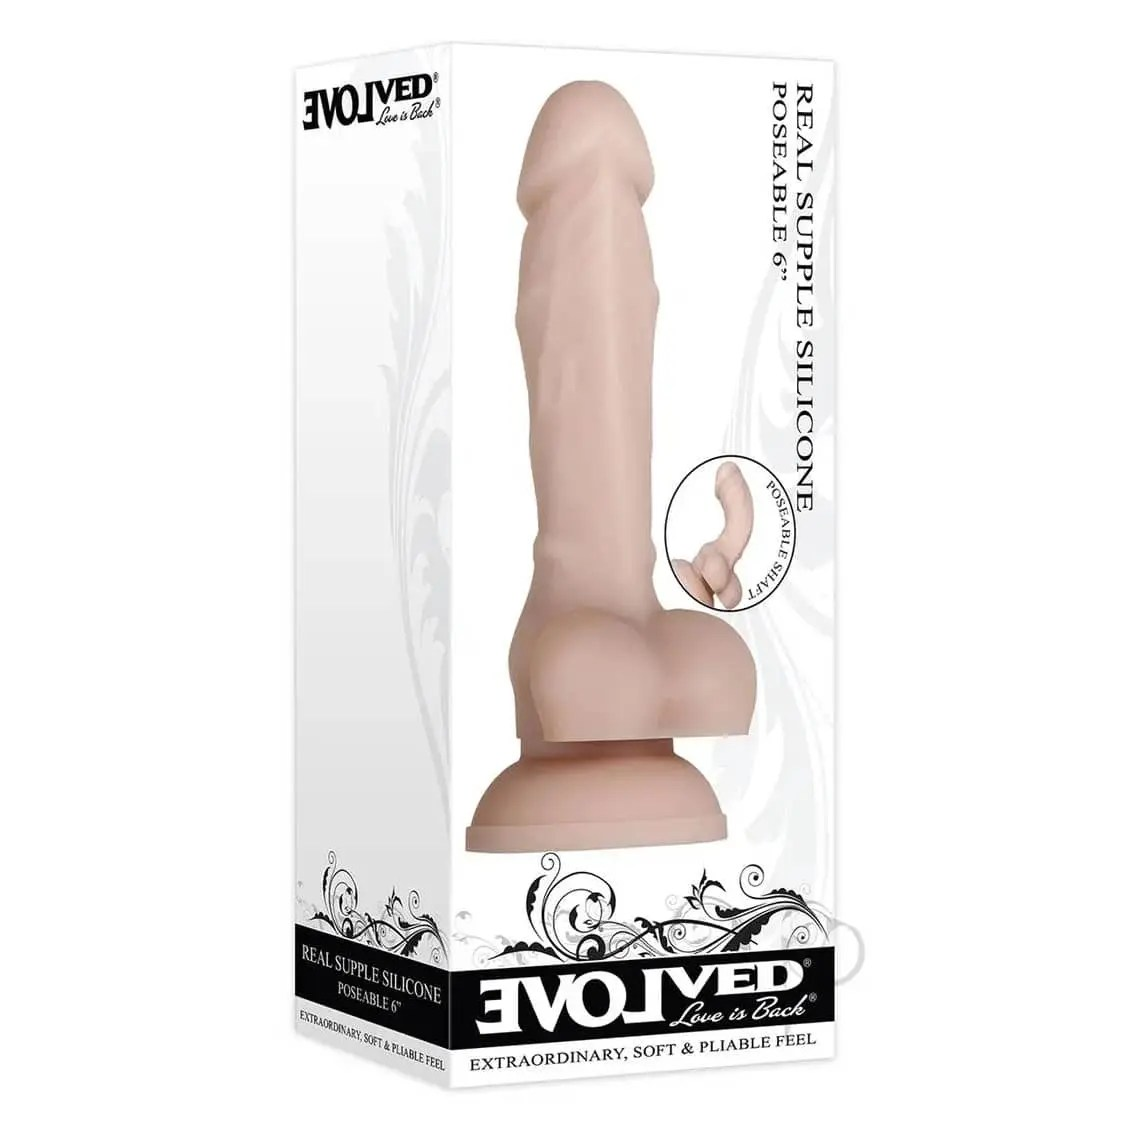 Real Supple – Poseable 6 inch Silicone Dildo